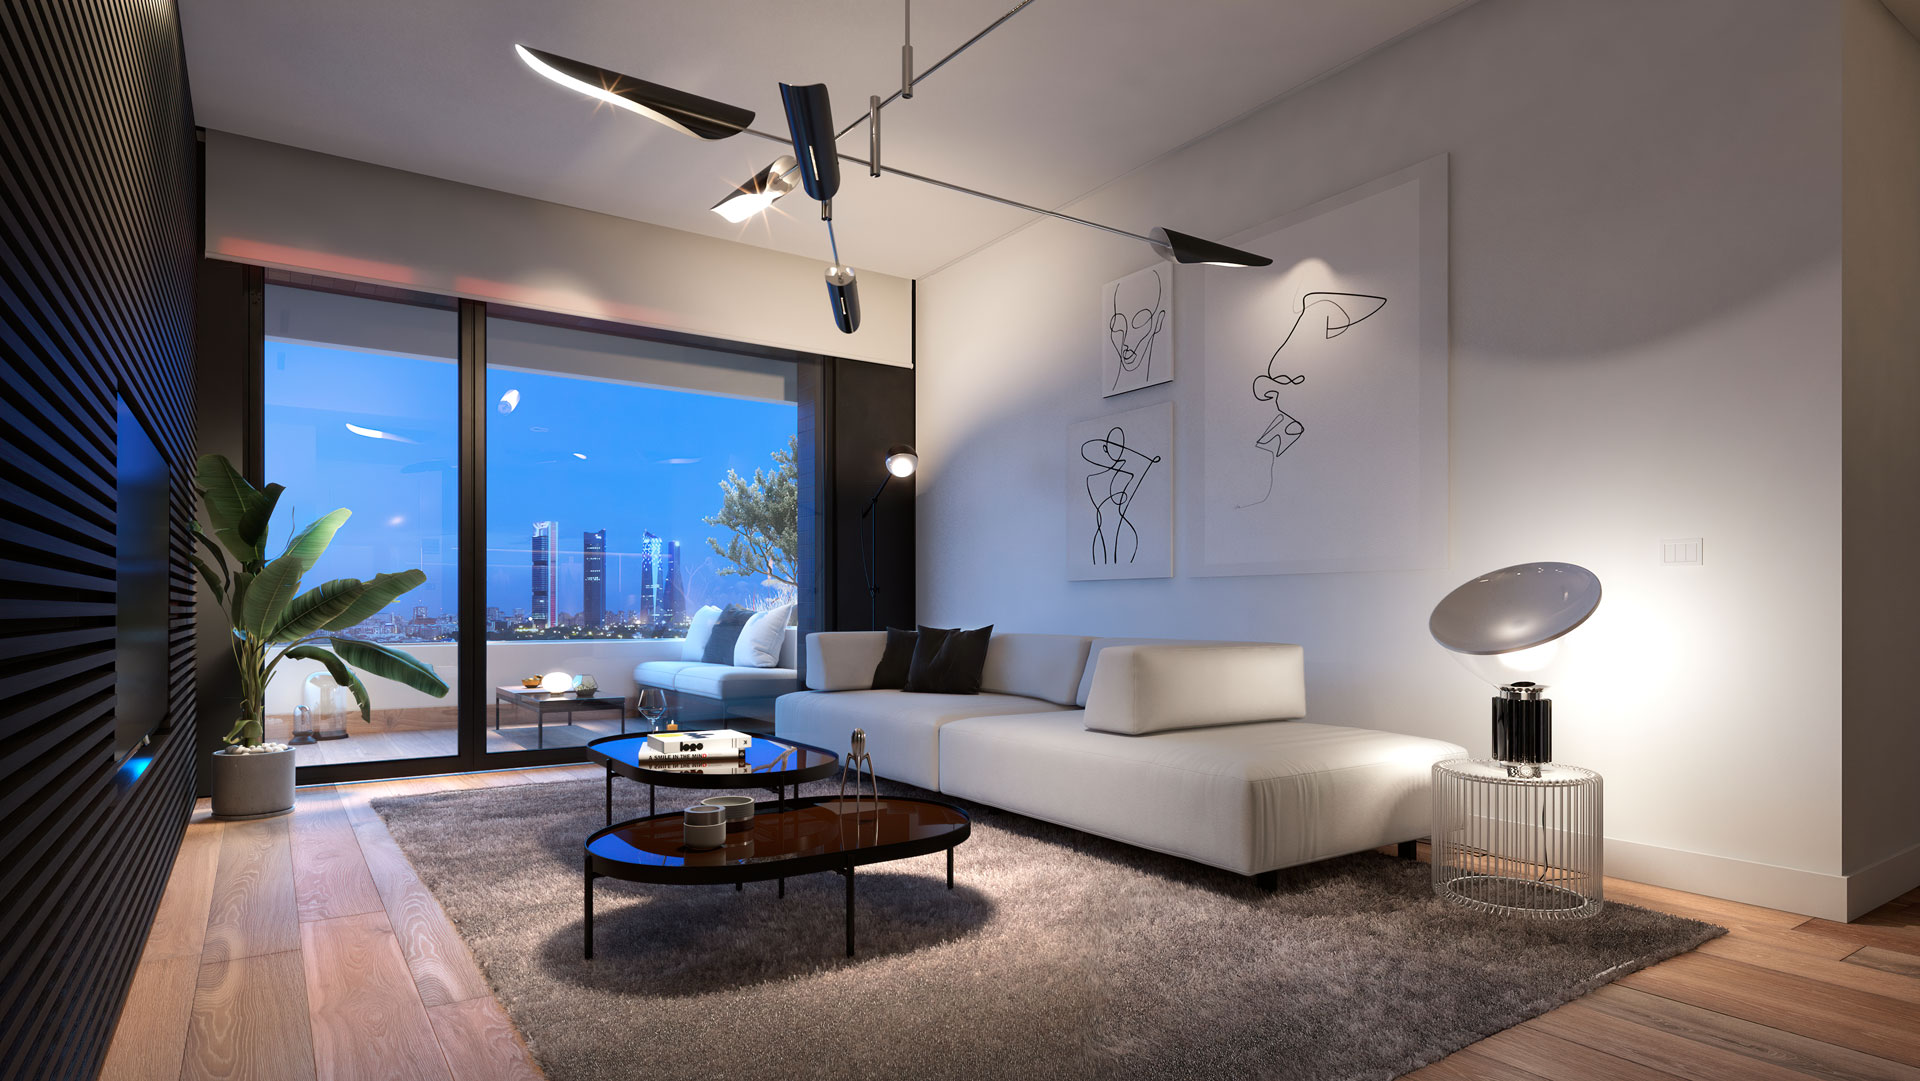 Interior living room of the 2-bedroom home with views to Cuatro Torres Business Area